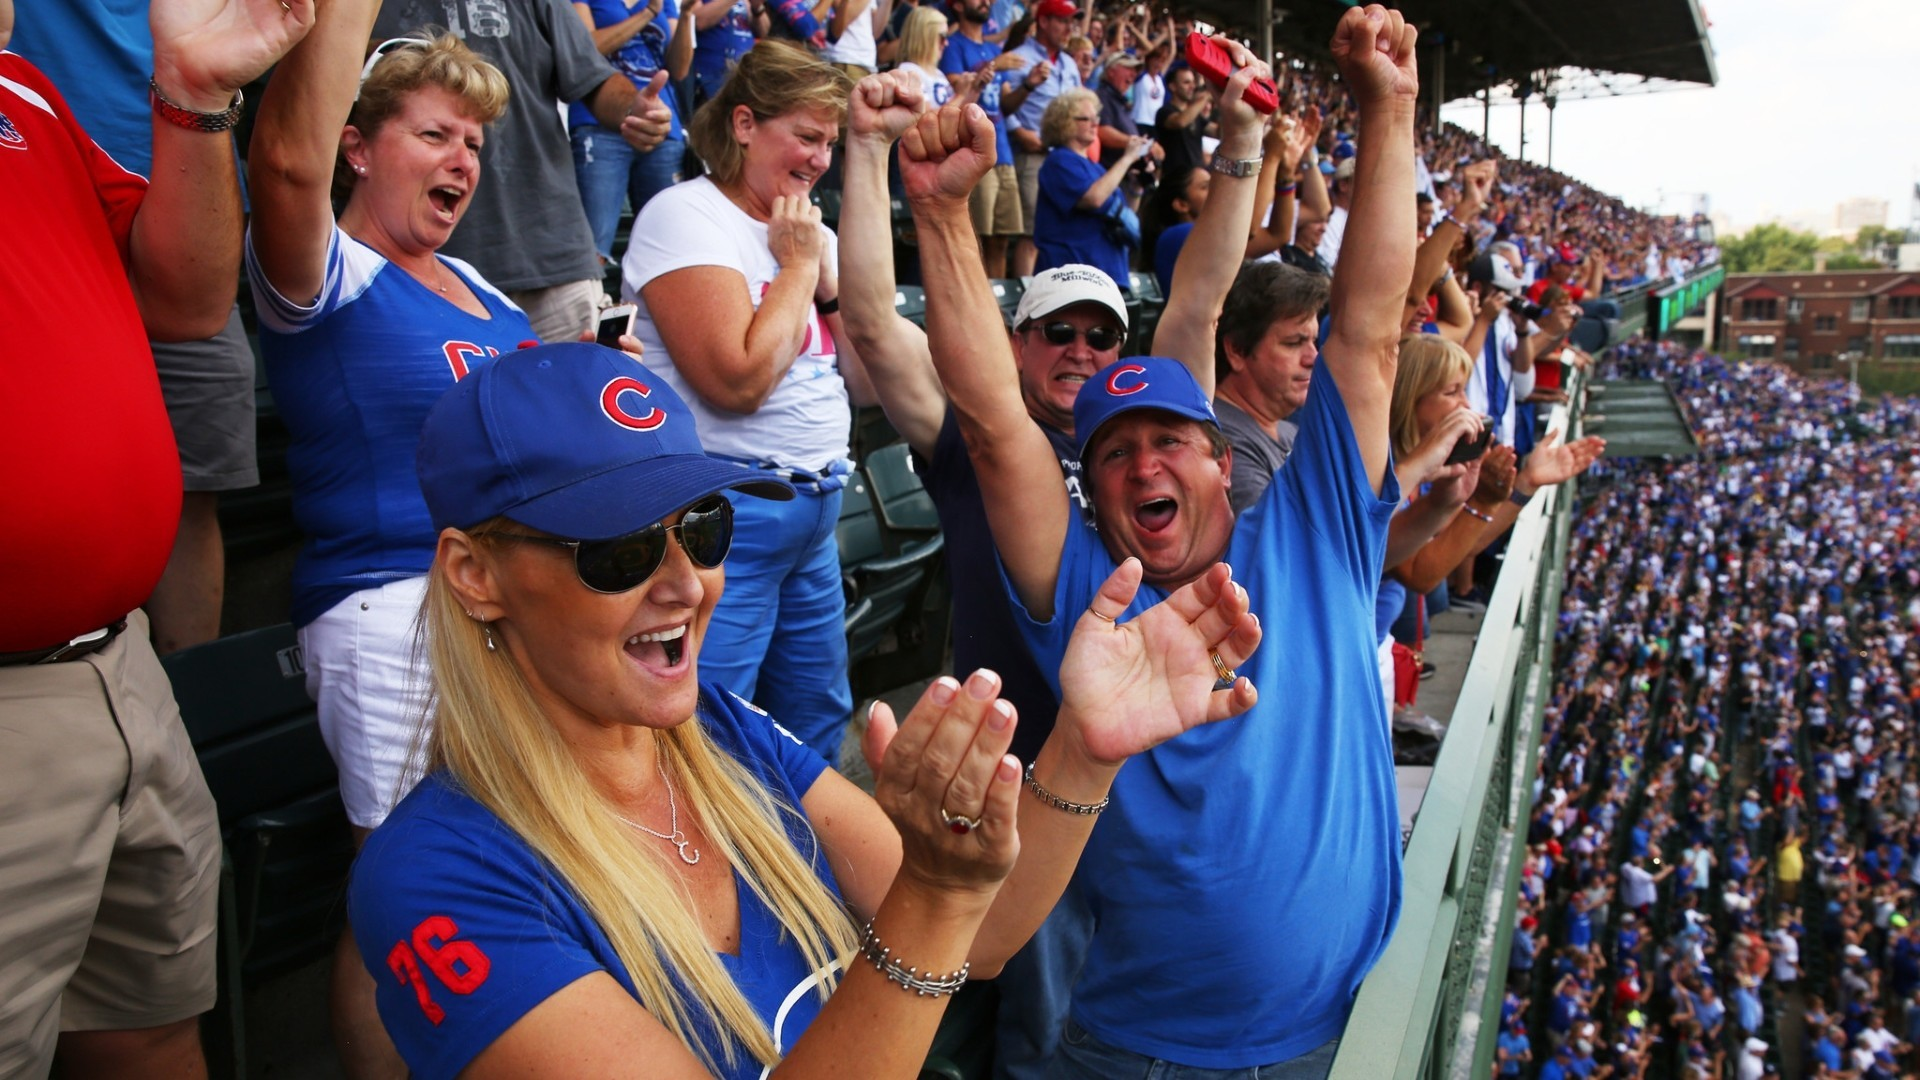 Ct-so-chicago-cubs-wrigley-field-video-20160922